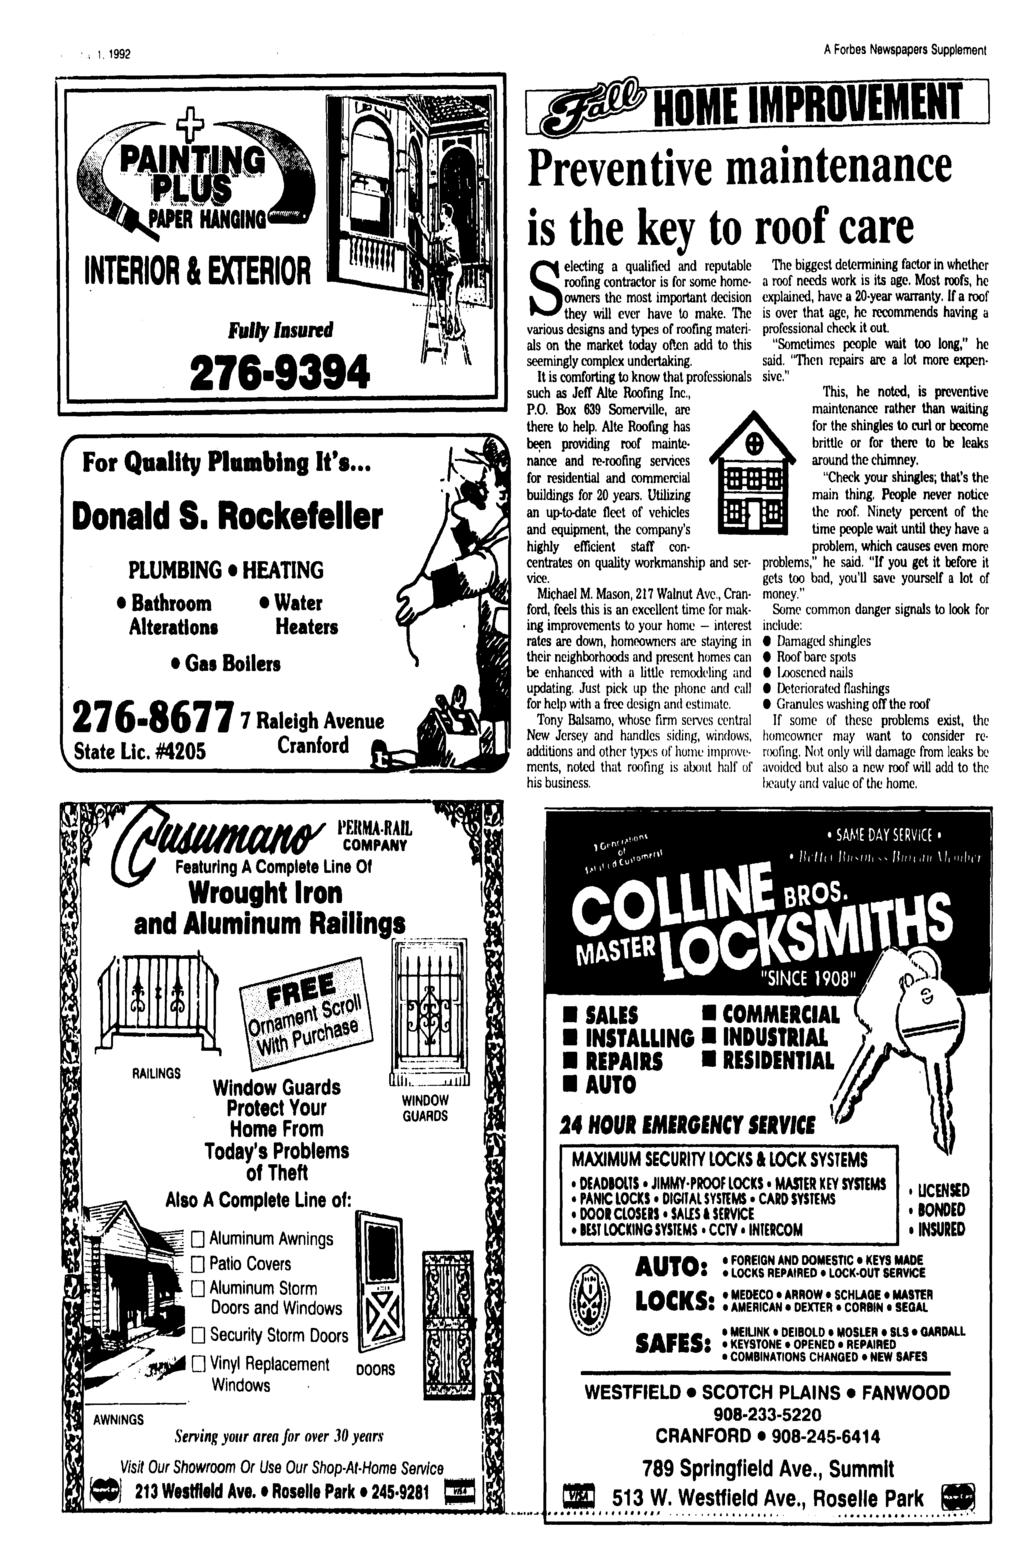 1992 A Forbes Newspapers Supplement HOME MPROVEMENT 11 Preventive maintenance NKRNWUW NTEROR & EXTEROR Fully nsured 276-9394 [ For Quality Plumbing t's Donald S.